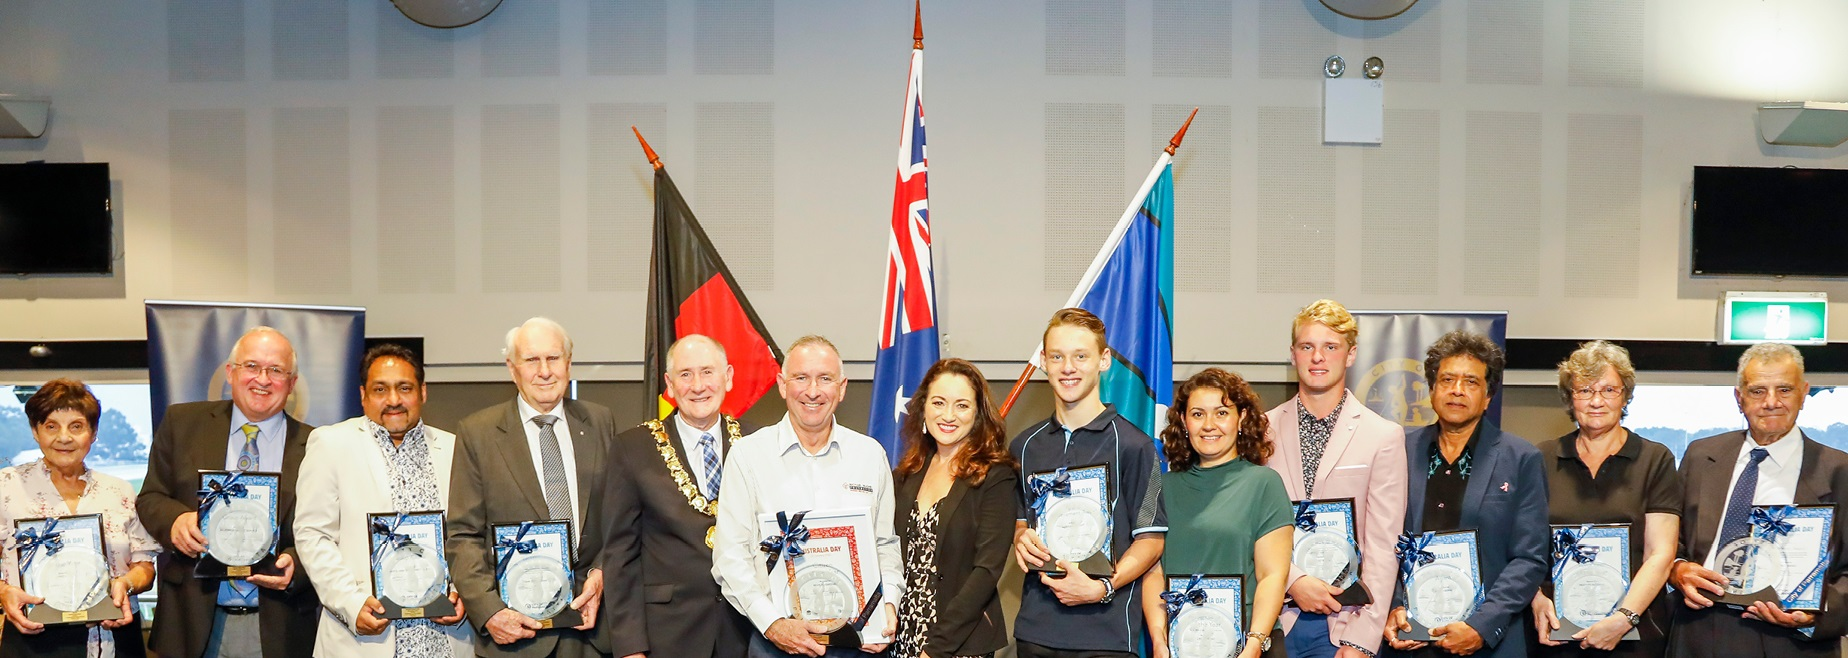 Lord Mayor Bob Dwyer and award winners at the Australia Day awards ceremony